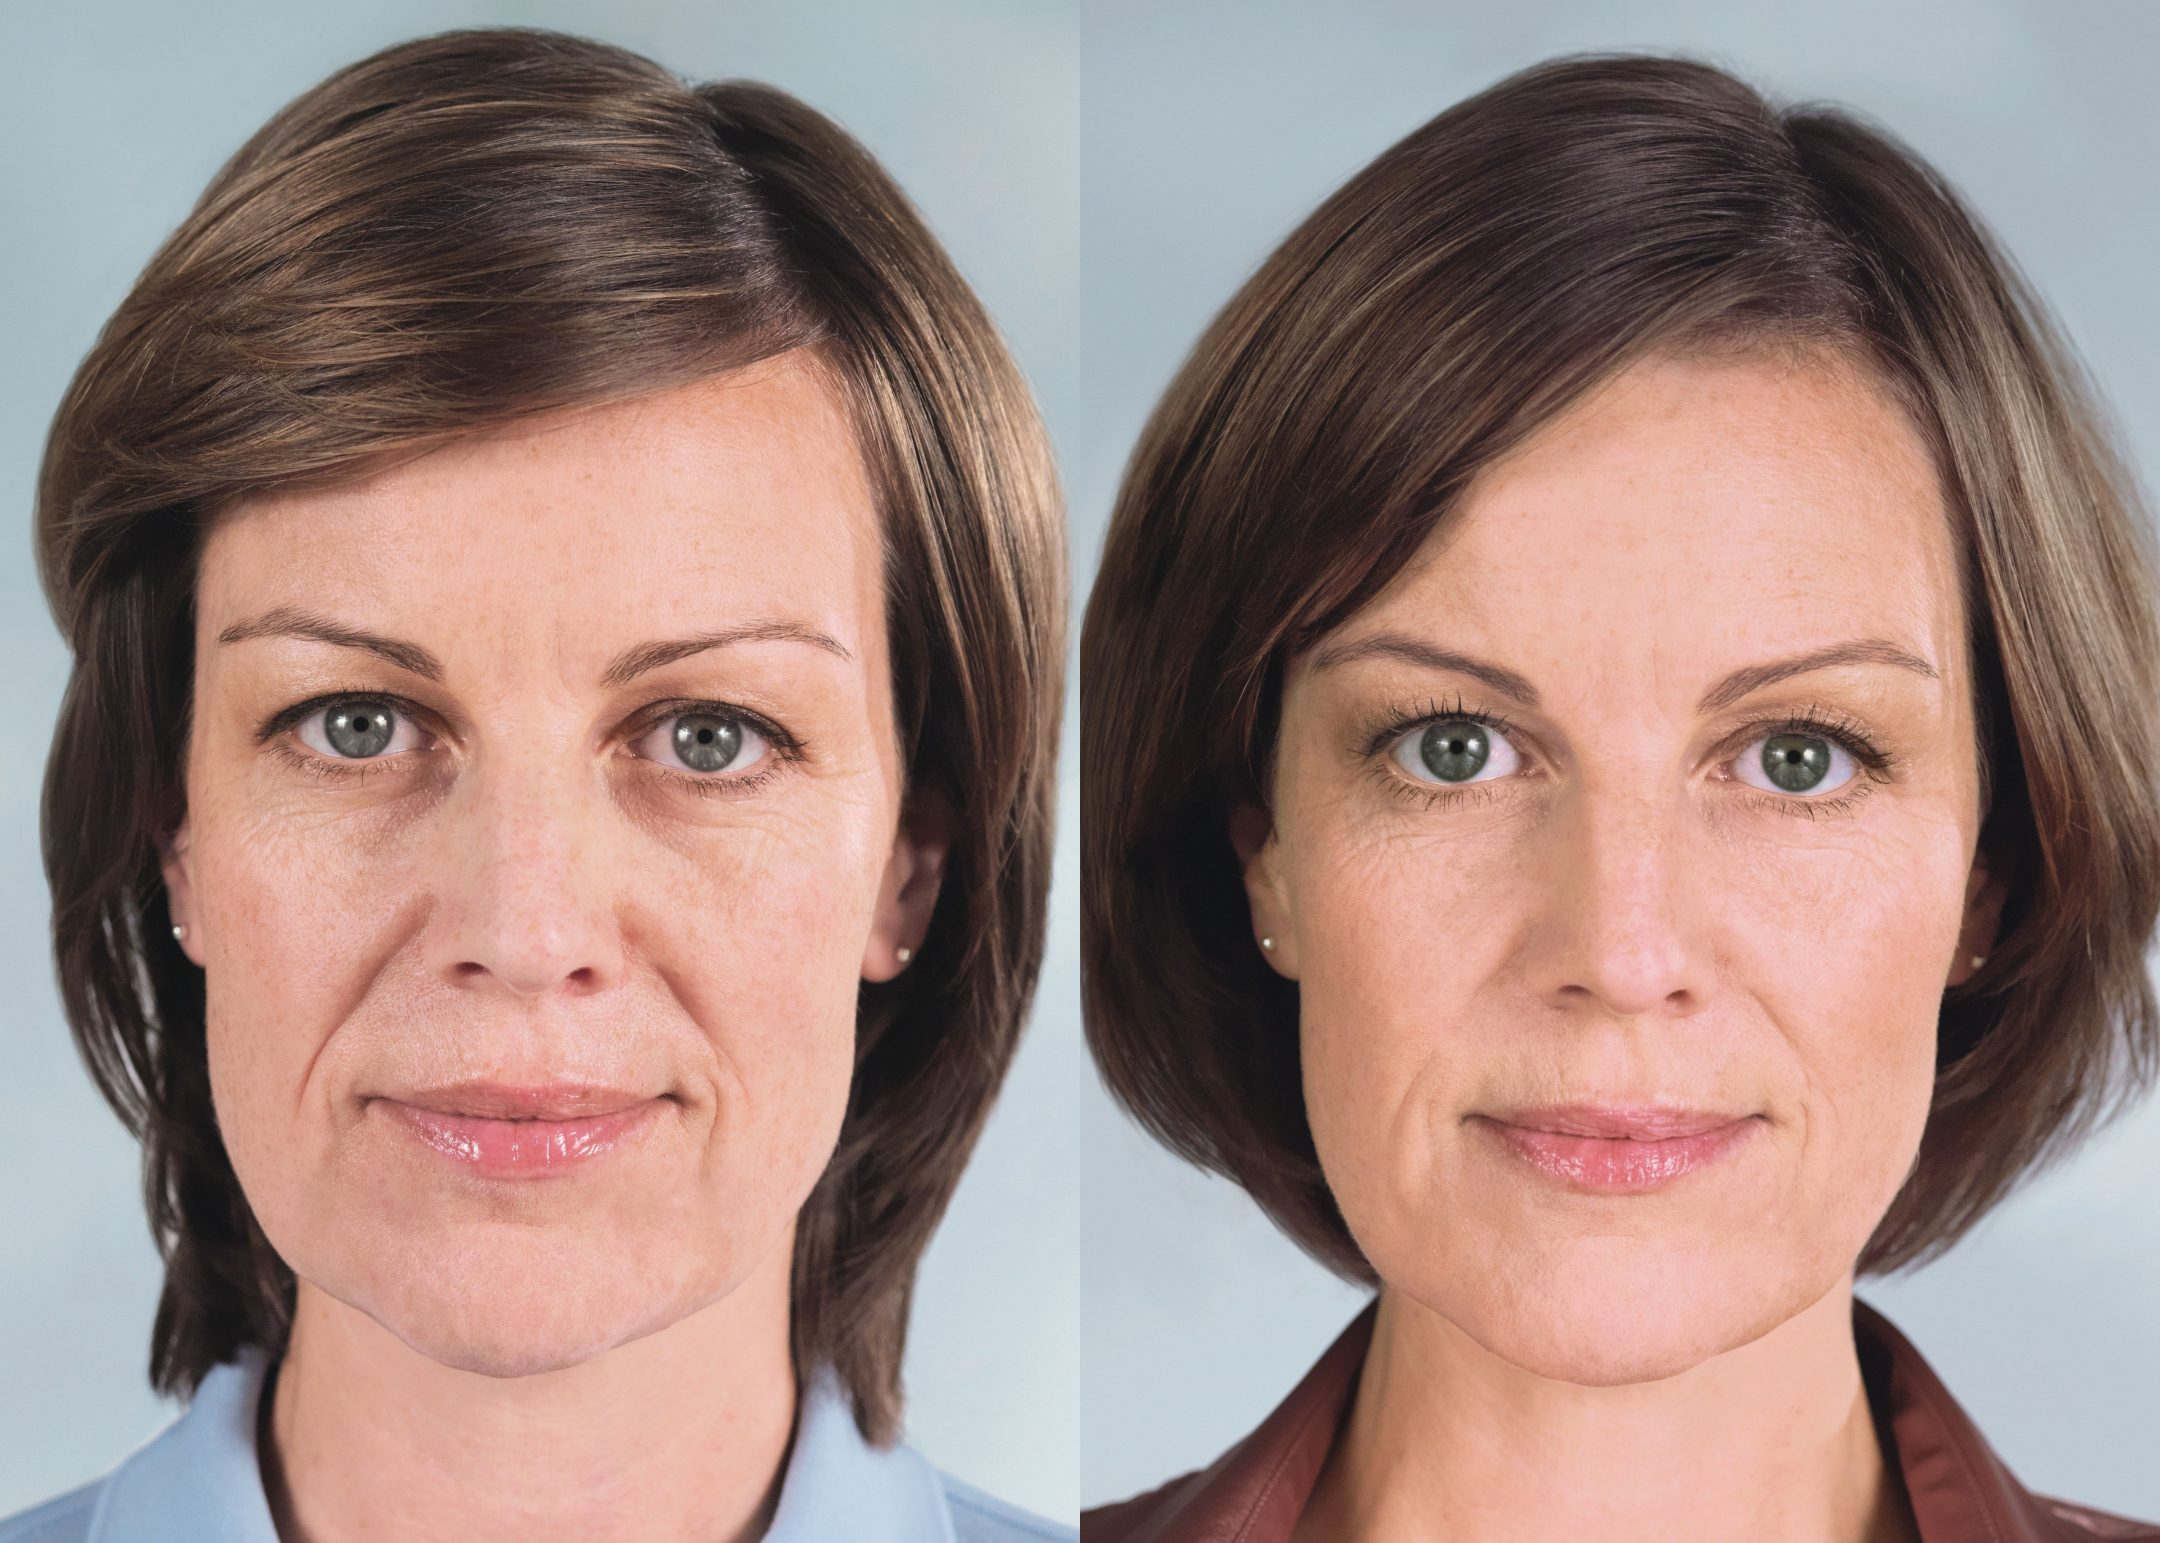 Franca – before and after Sculptra